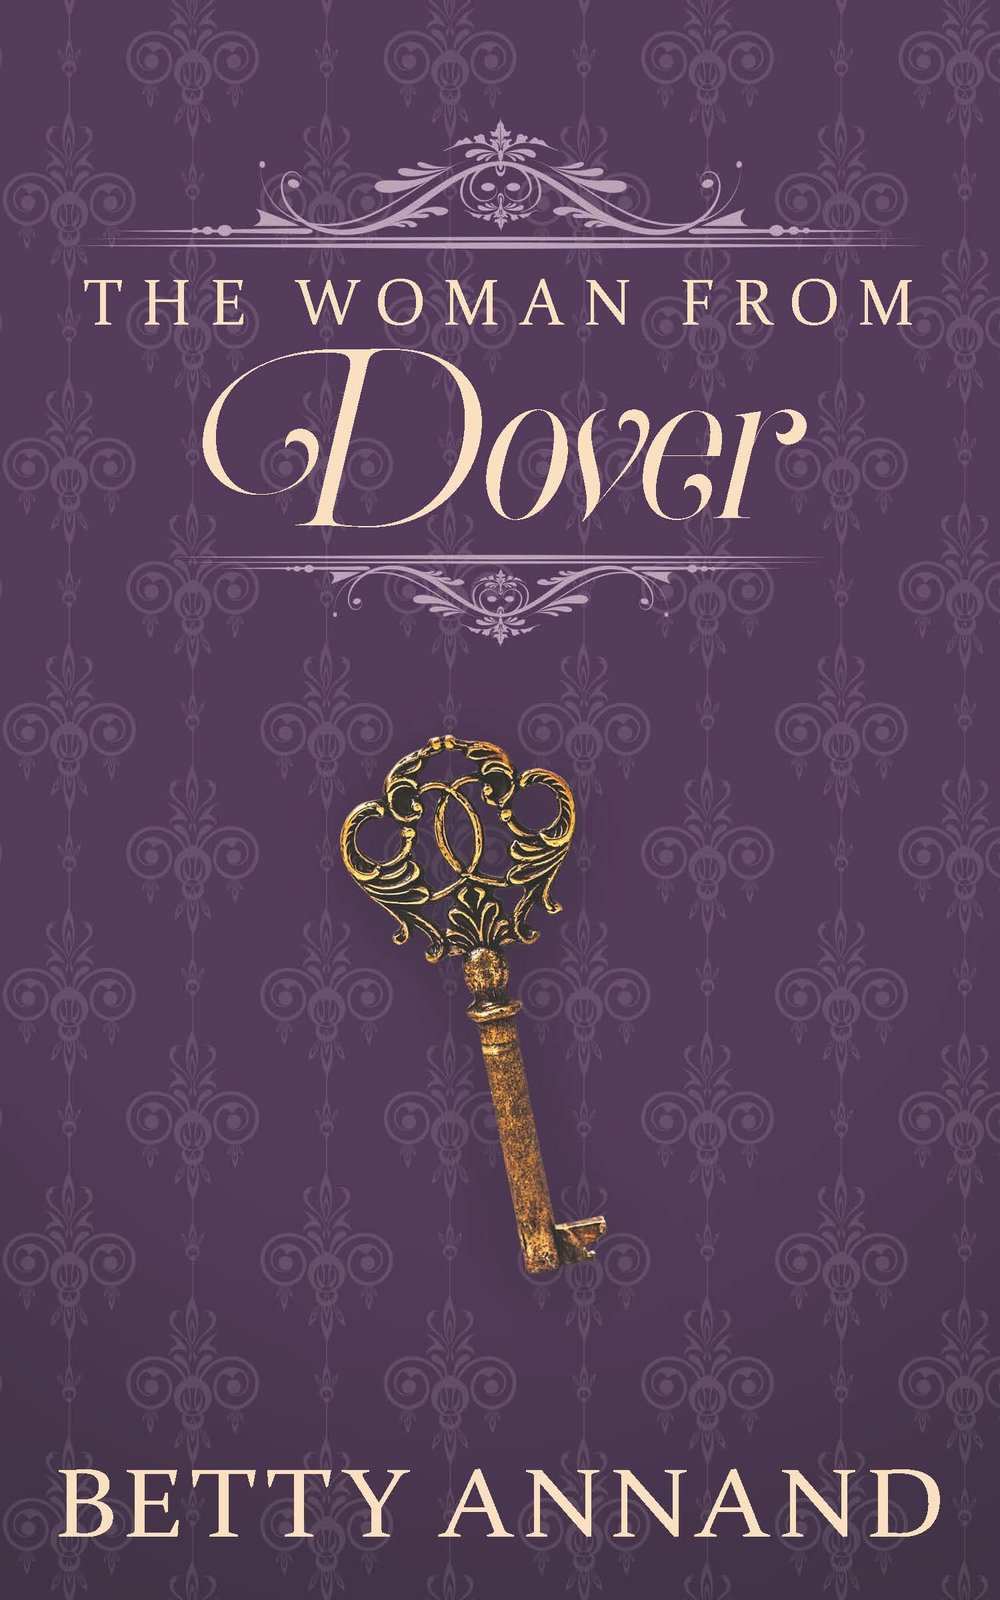 TheWomanFromDover_cover_031017.jpg